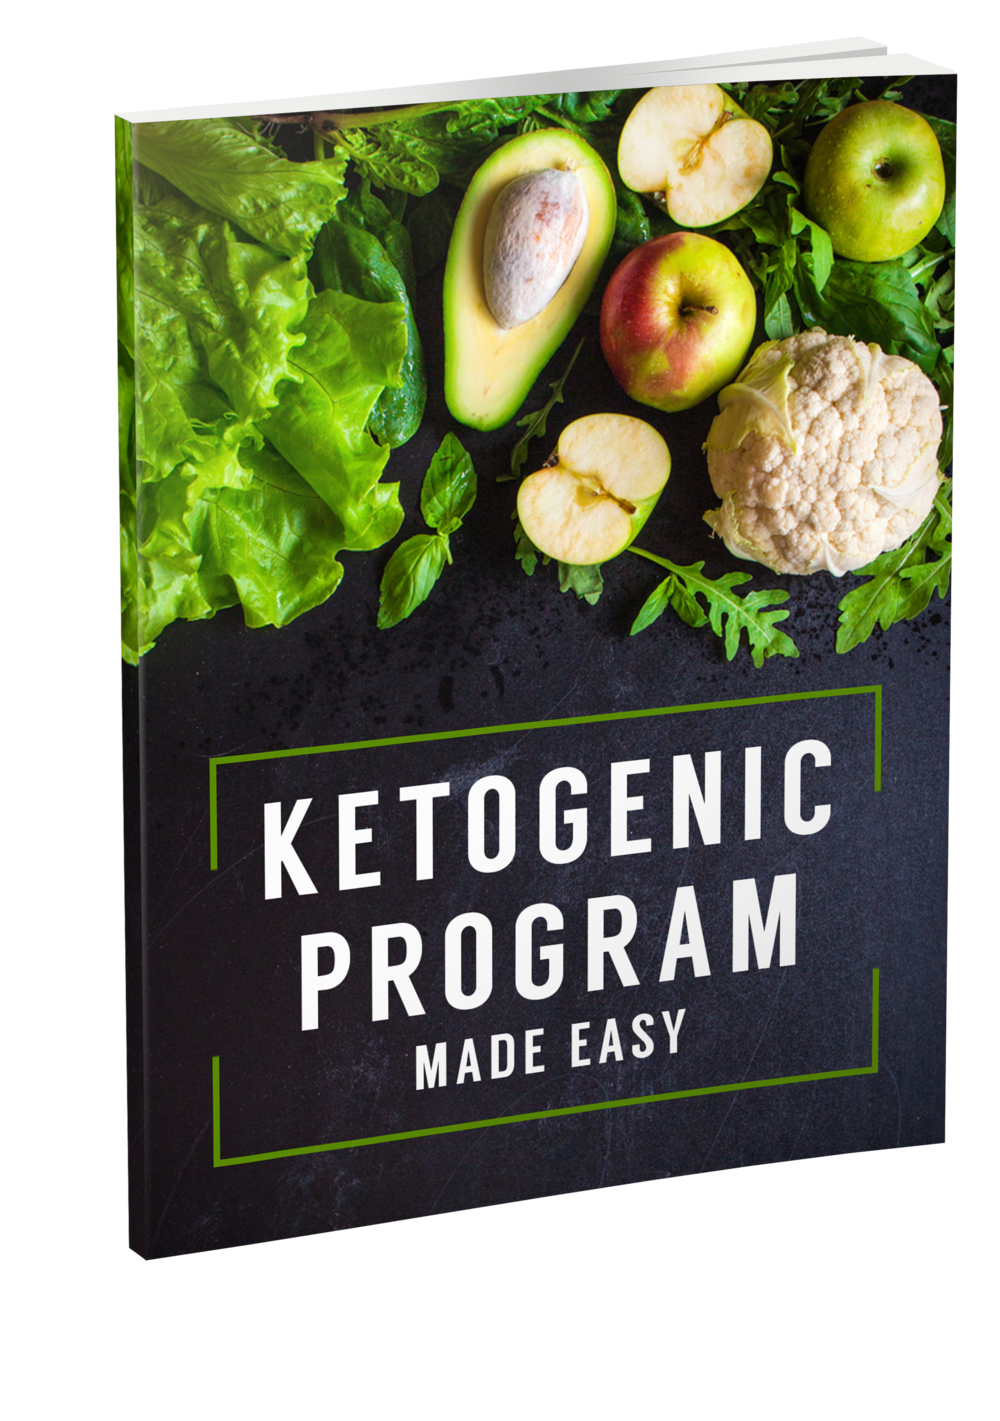 Get ready to enjoy delicious, easy-to-prepare recipes that will leave you feeling amazing and satisfied.   This program is worth $297 but you get all of this for just $87! - Intro price.  Get it now while you can.